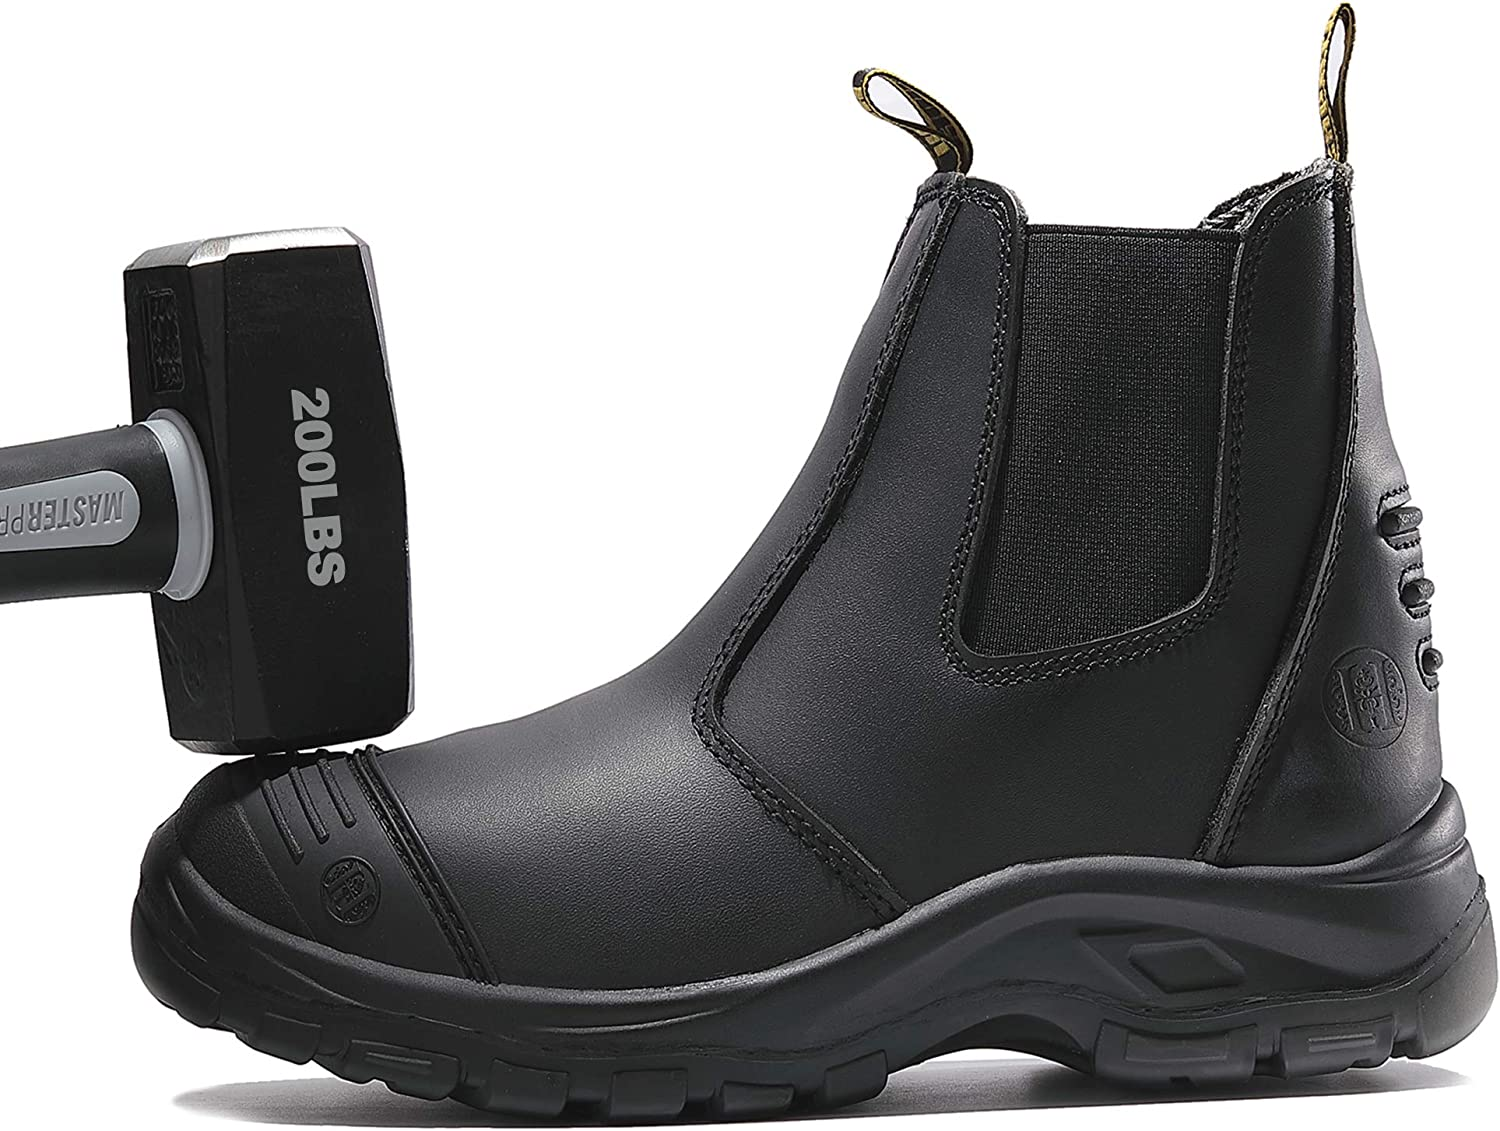 WORKPOINT Work Boots for Men Steel Toe